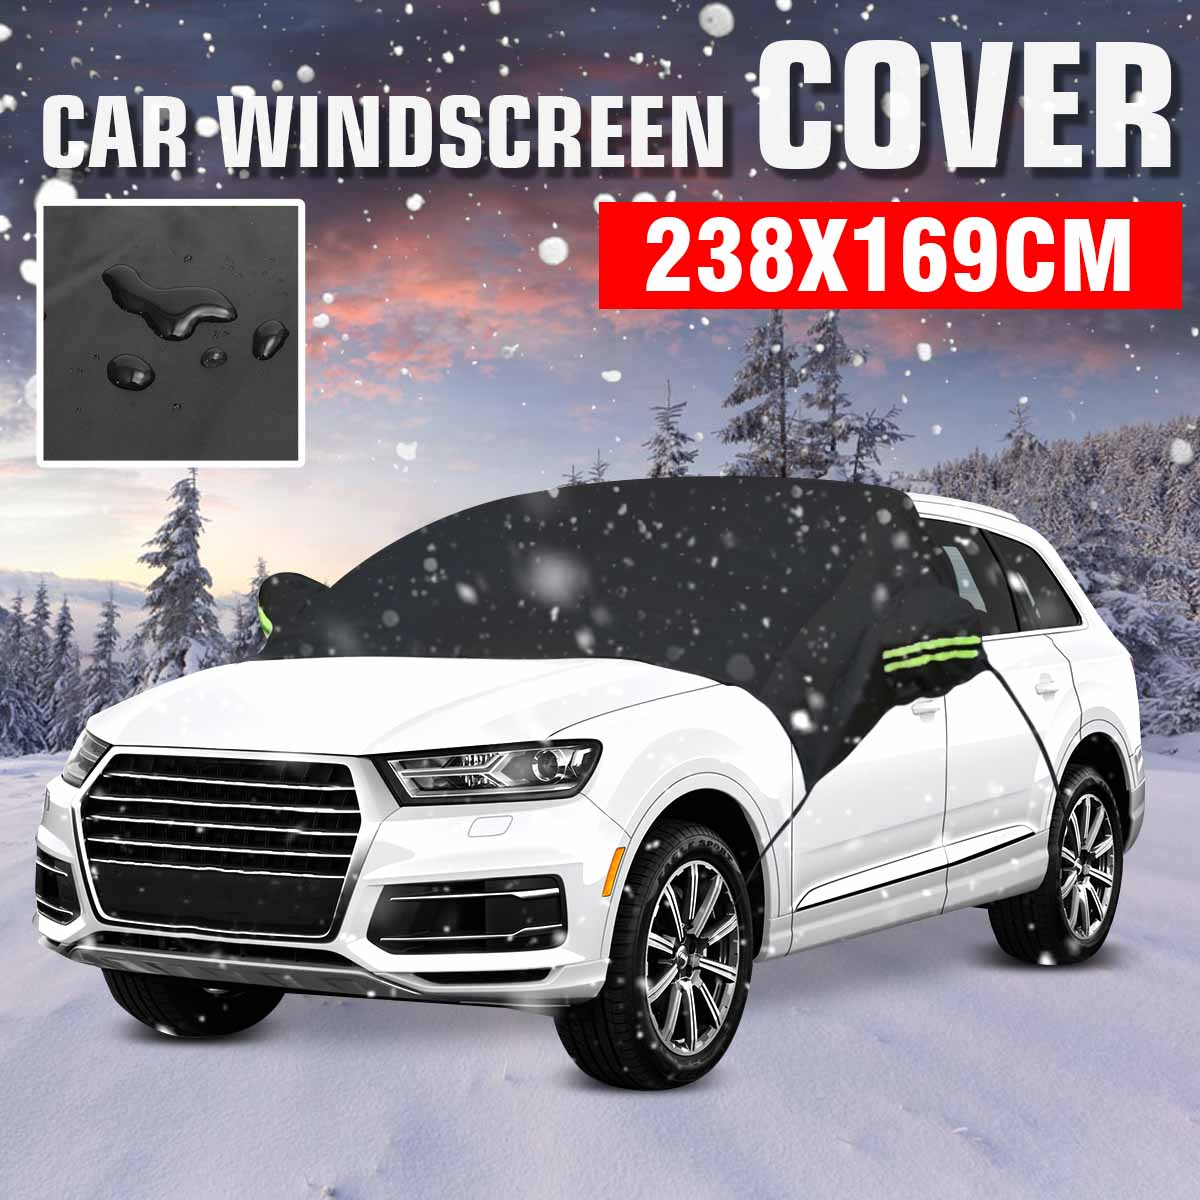 238x169cm Car Windscreen Cover Heat Sun Shade Anti Snow Frost Ice Shield Dust Protector Universal Summer Car Cover